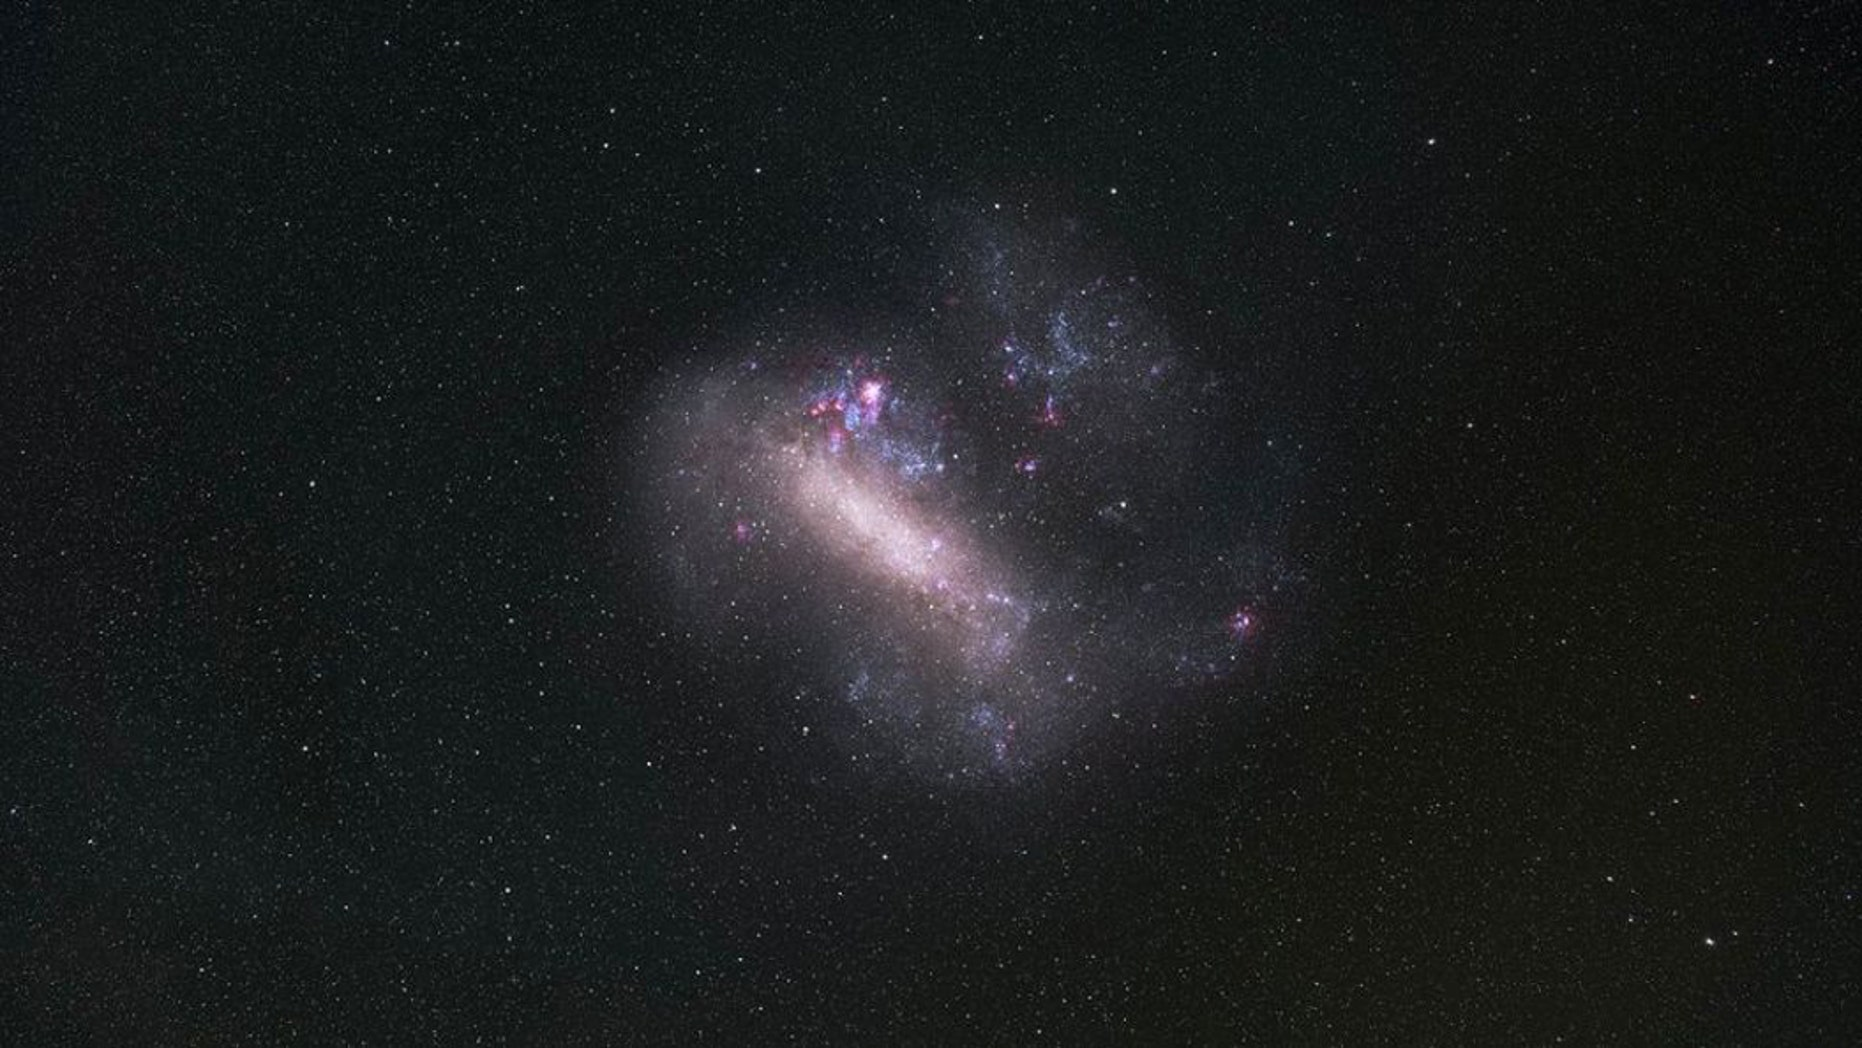 The Large Magellanic Cloud (LMC), one of the Milky Way's closest galactic neighbors, gets a close-up in this image from the European Southern Observatory's La Silla Observatory. (Credit: Zdeněk Bardon/ESO)